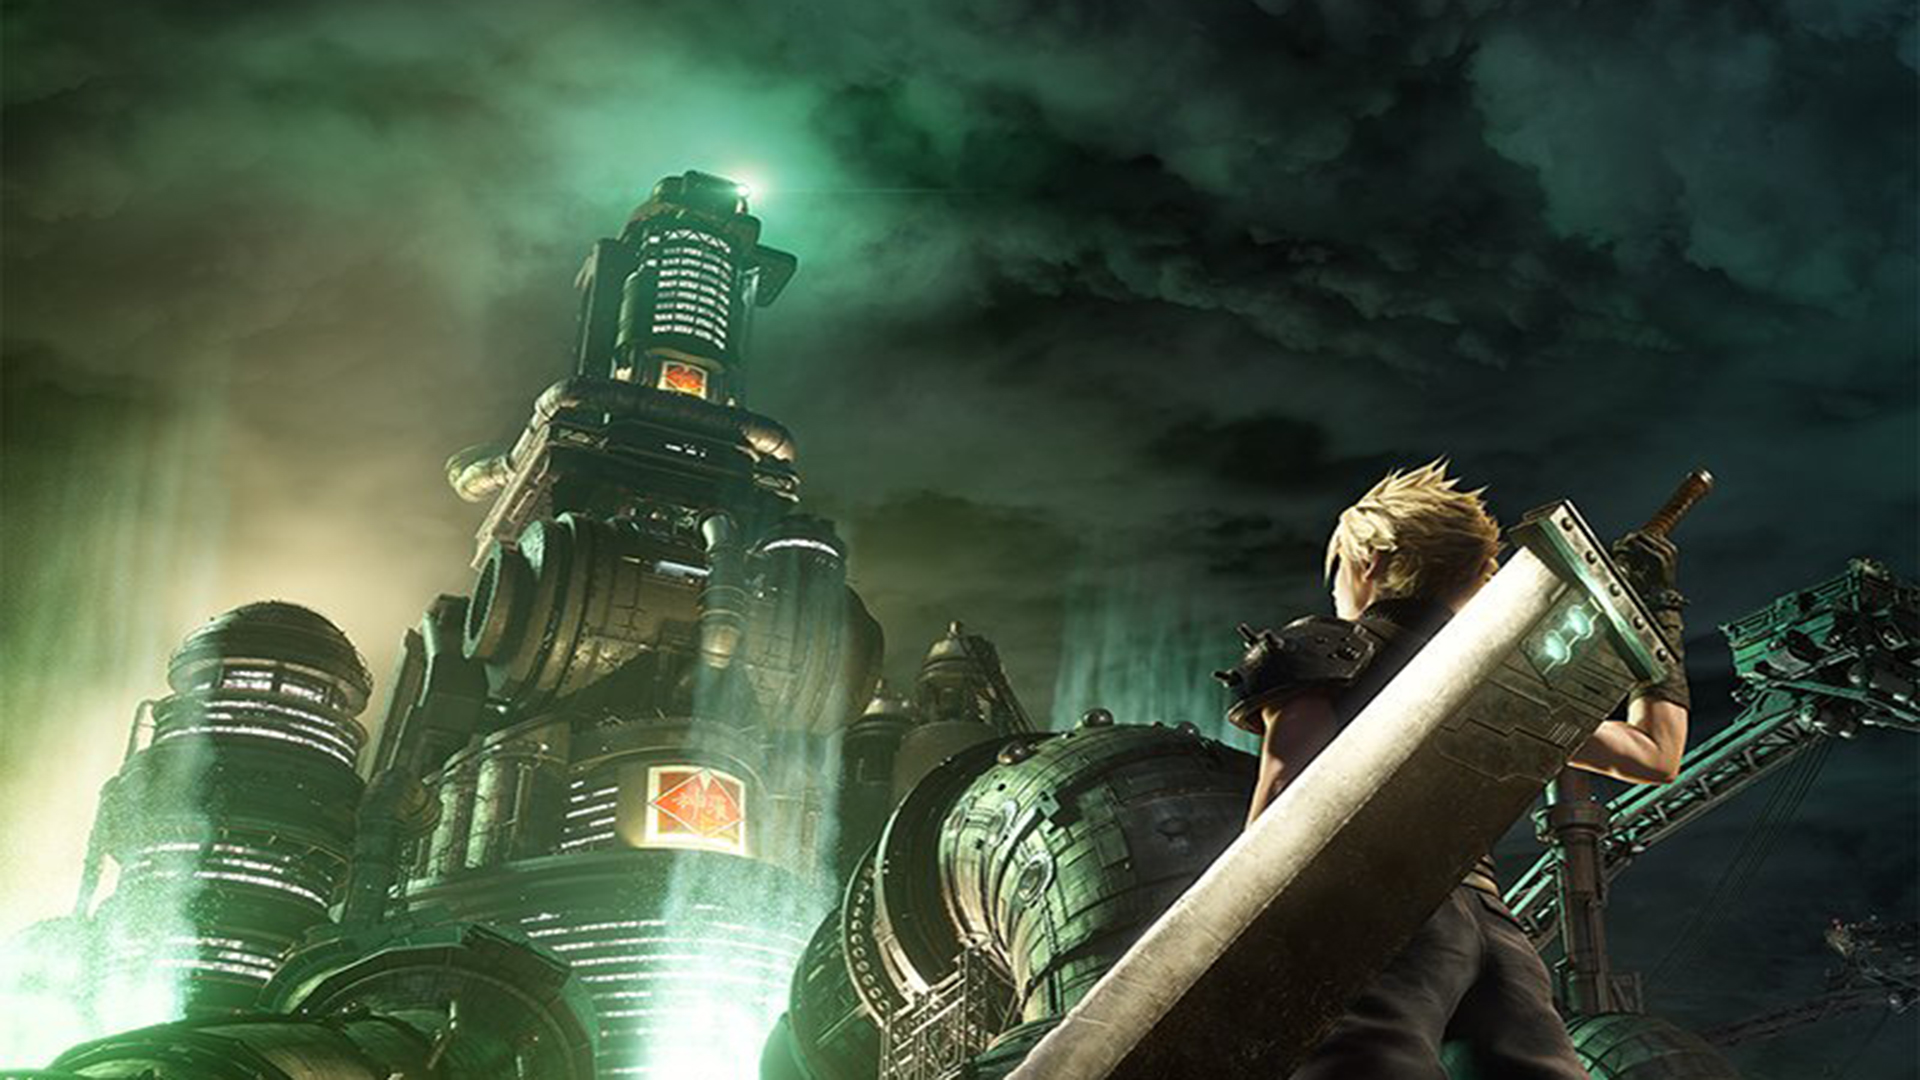 Final Fantasy 7 Remake Celebrates The Anniversary Of The Original